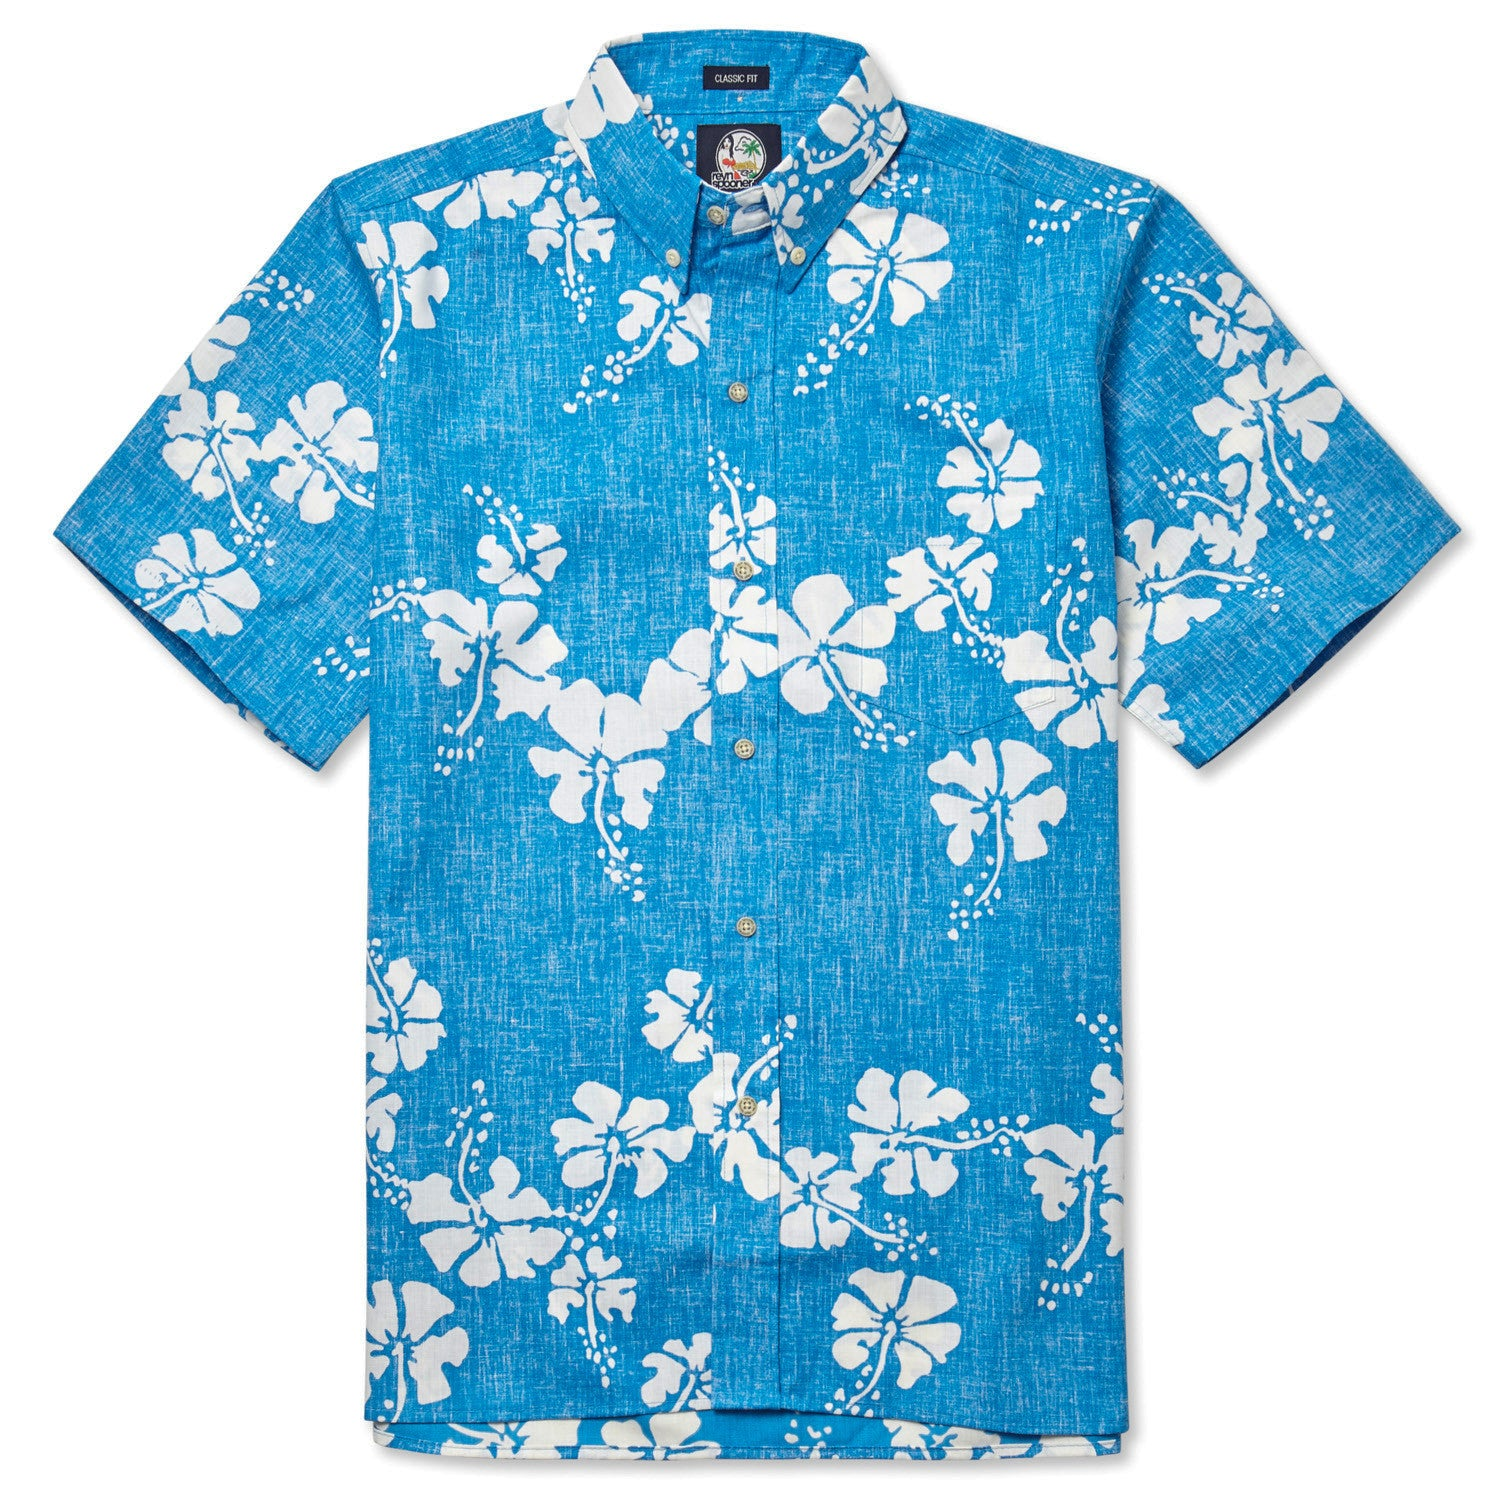 50Th State Flower / Classic Fit Button Front Shirt, Cotton/Polyester, For Men, 2XL, Sky Blue, From Reyn Spooner